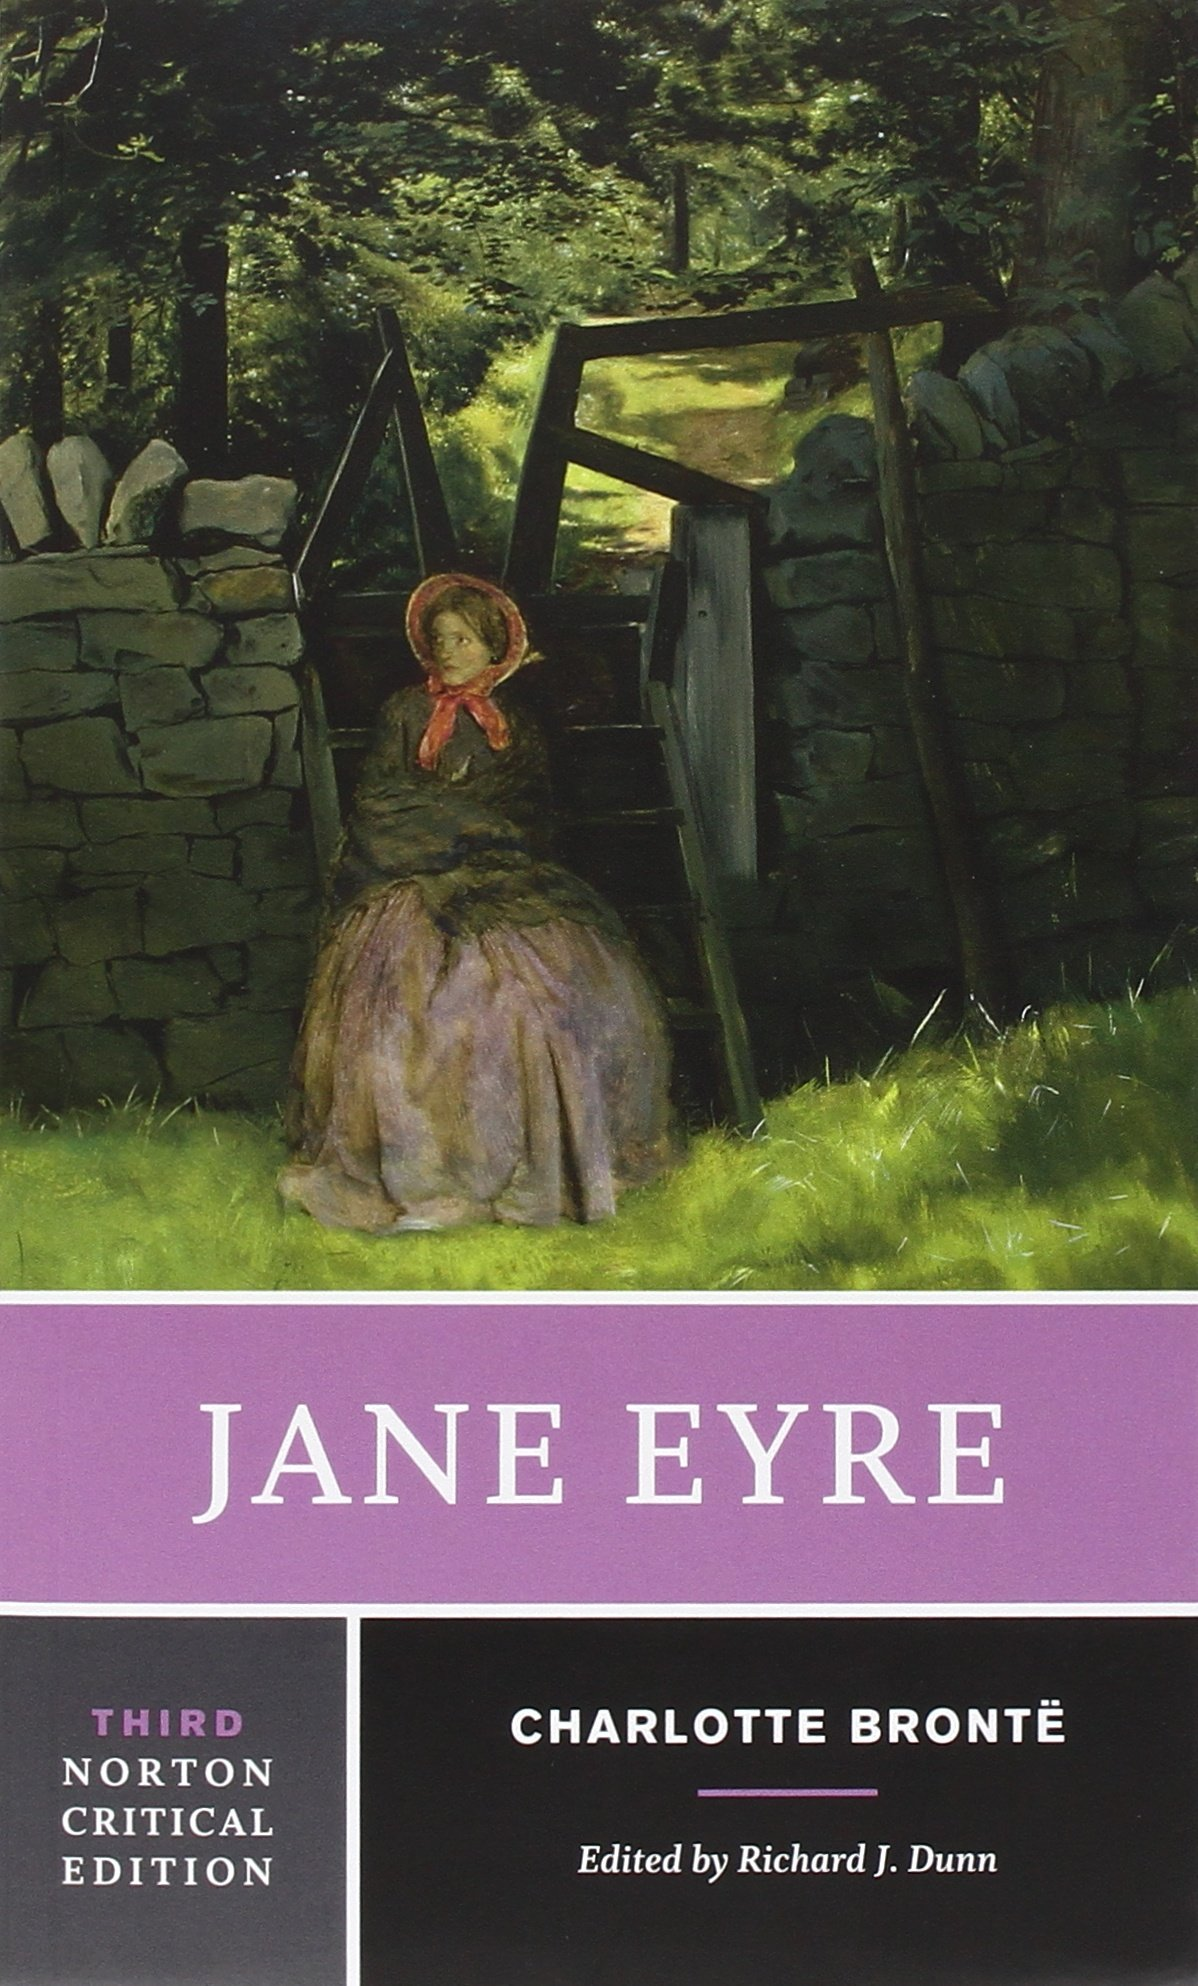 critical analysis essay on jane eyre  a critical evaluation of charlotte bronte s jane eyre essay jane ey